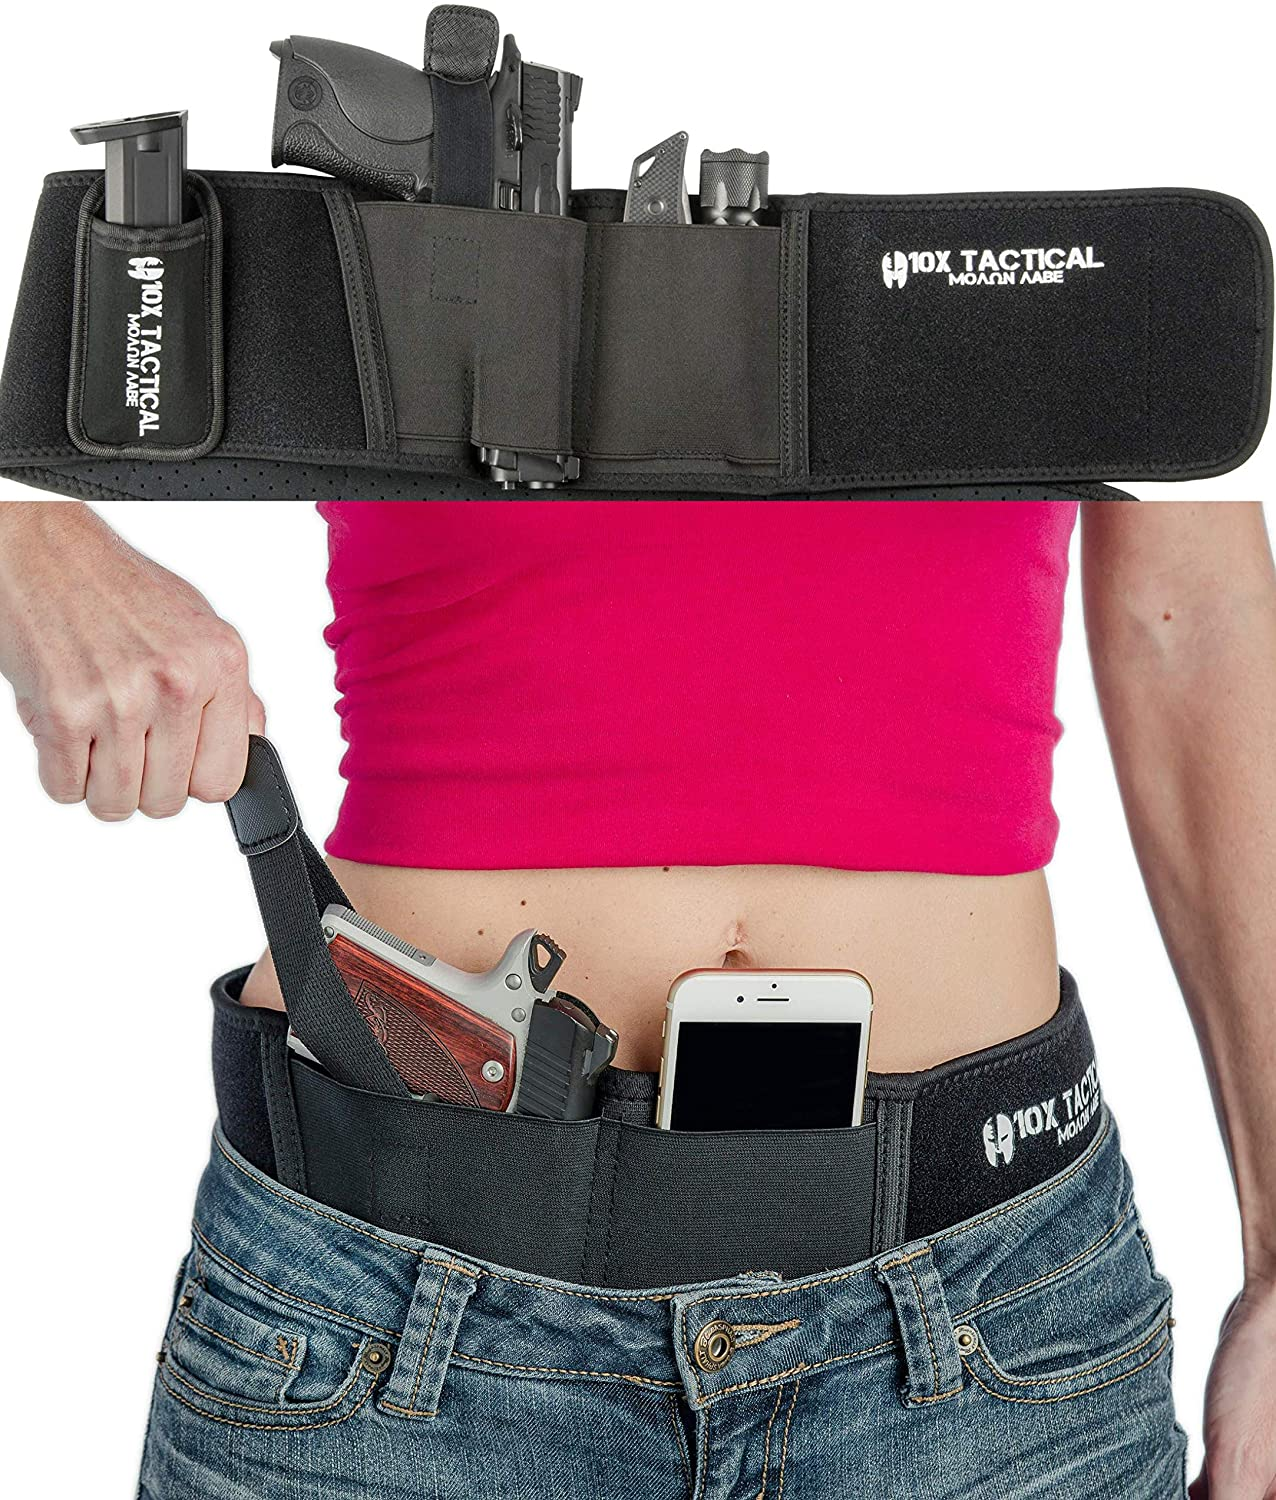 Tactical Concealed Carry Belly Band Holster Fits Gun Glock P238 Ruger LCP